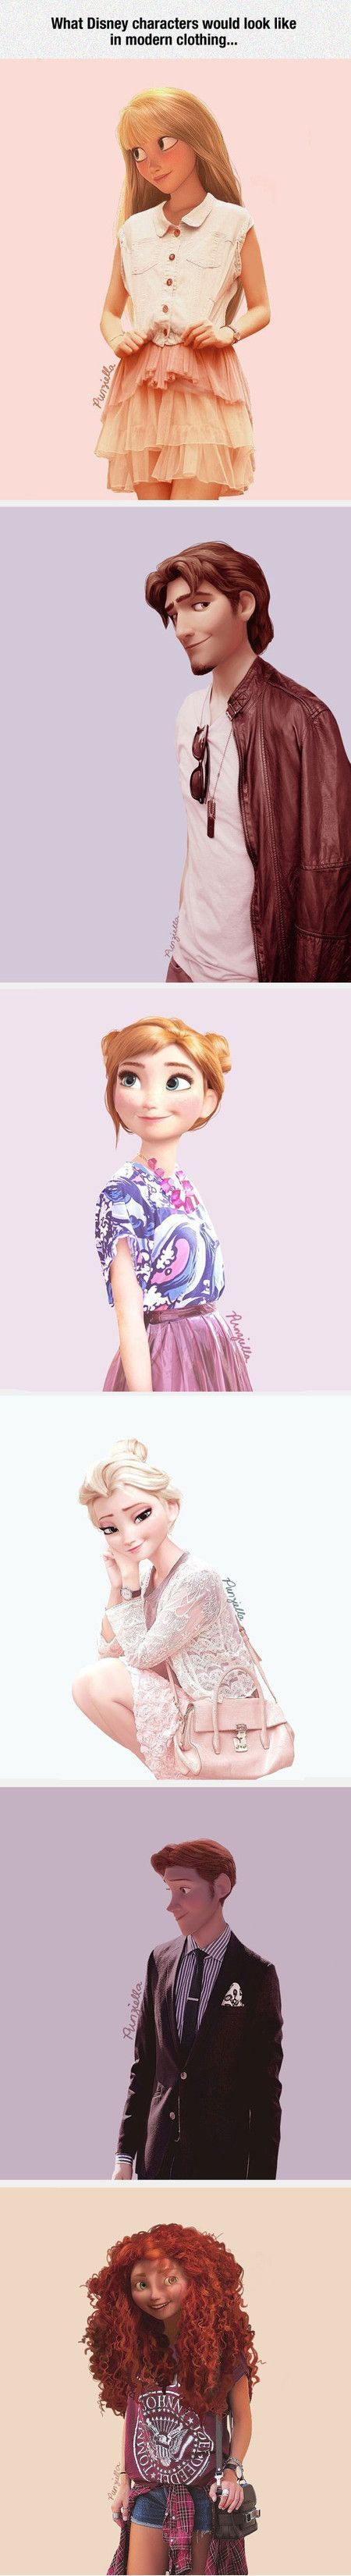 Funniest Memes - [How Disney Characters Would Look Like In Modern...]